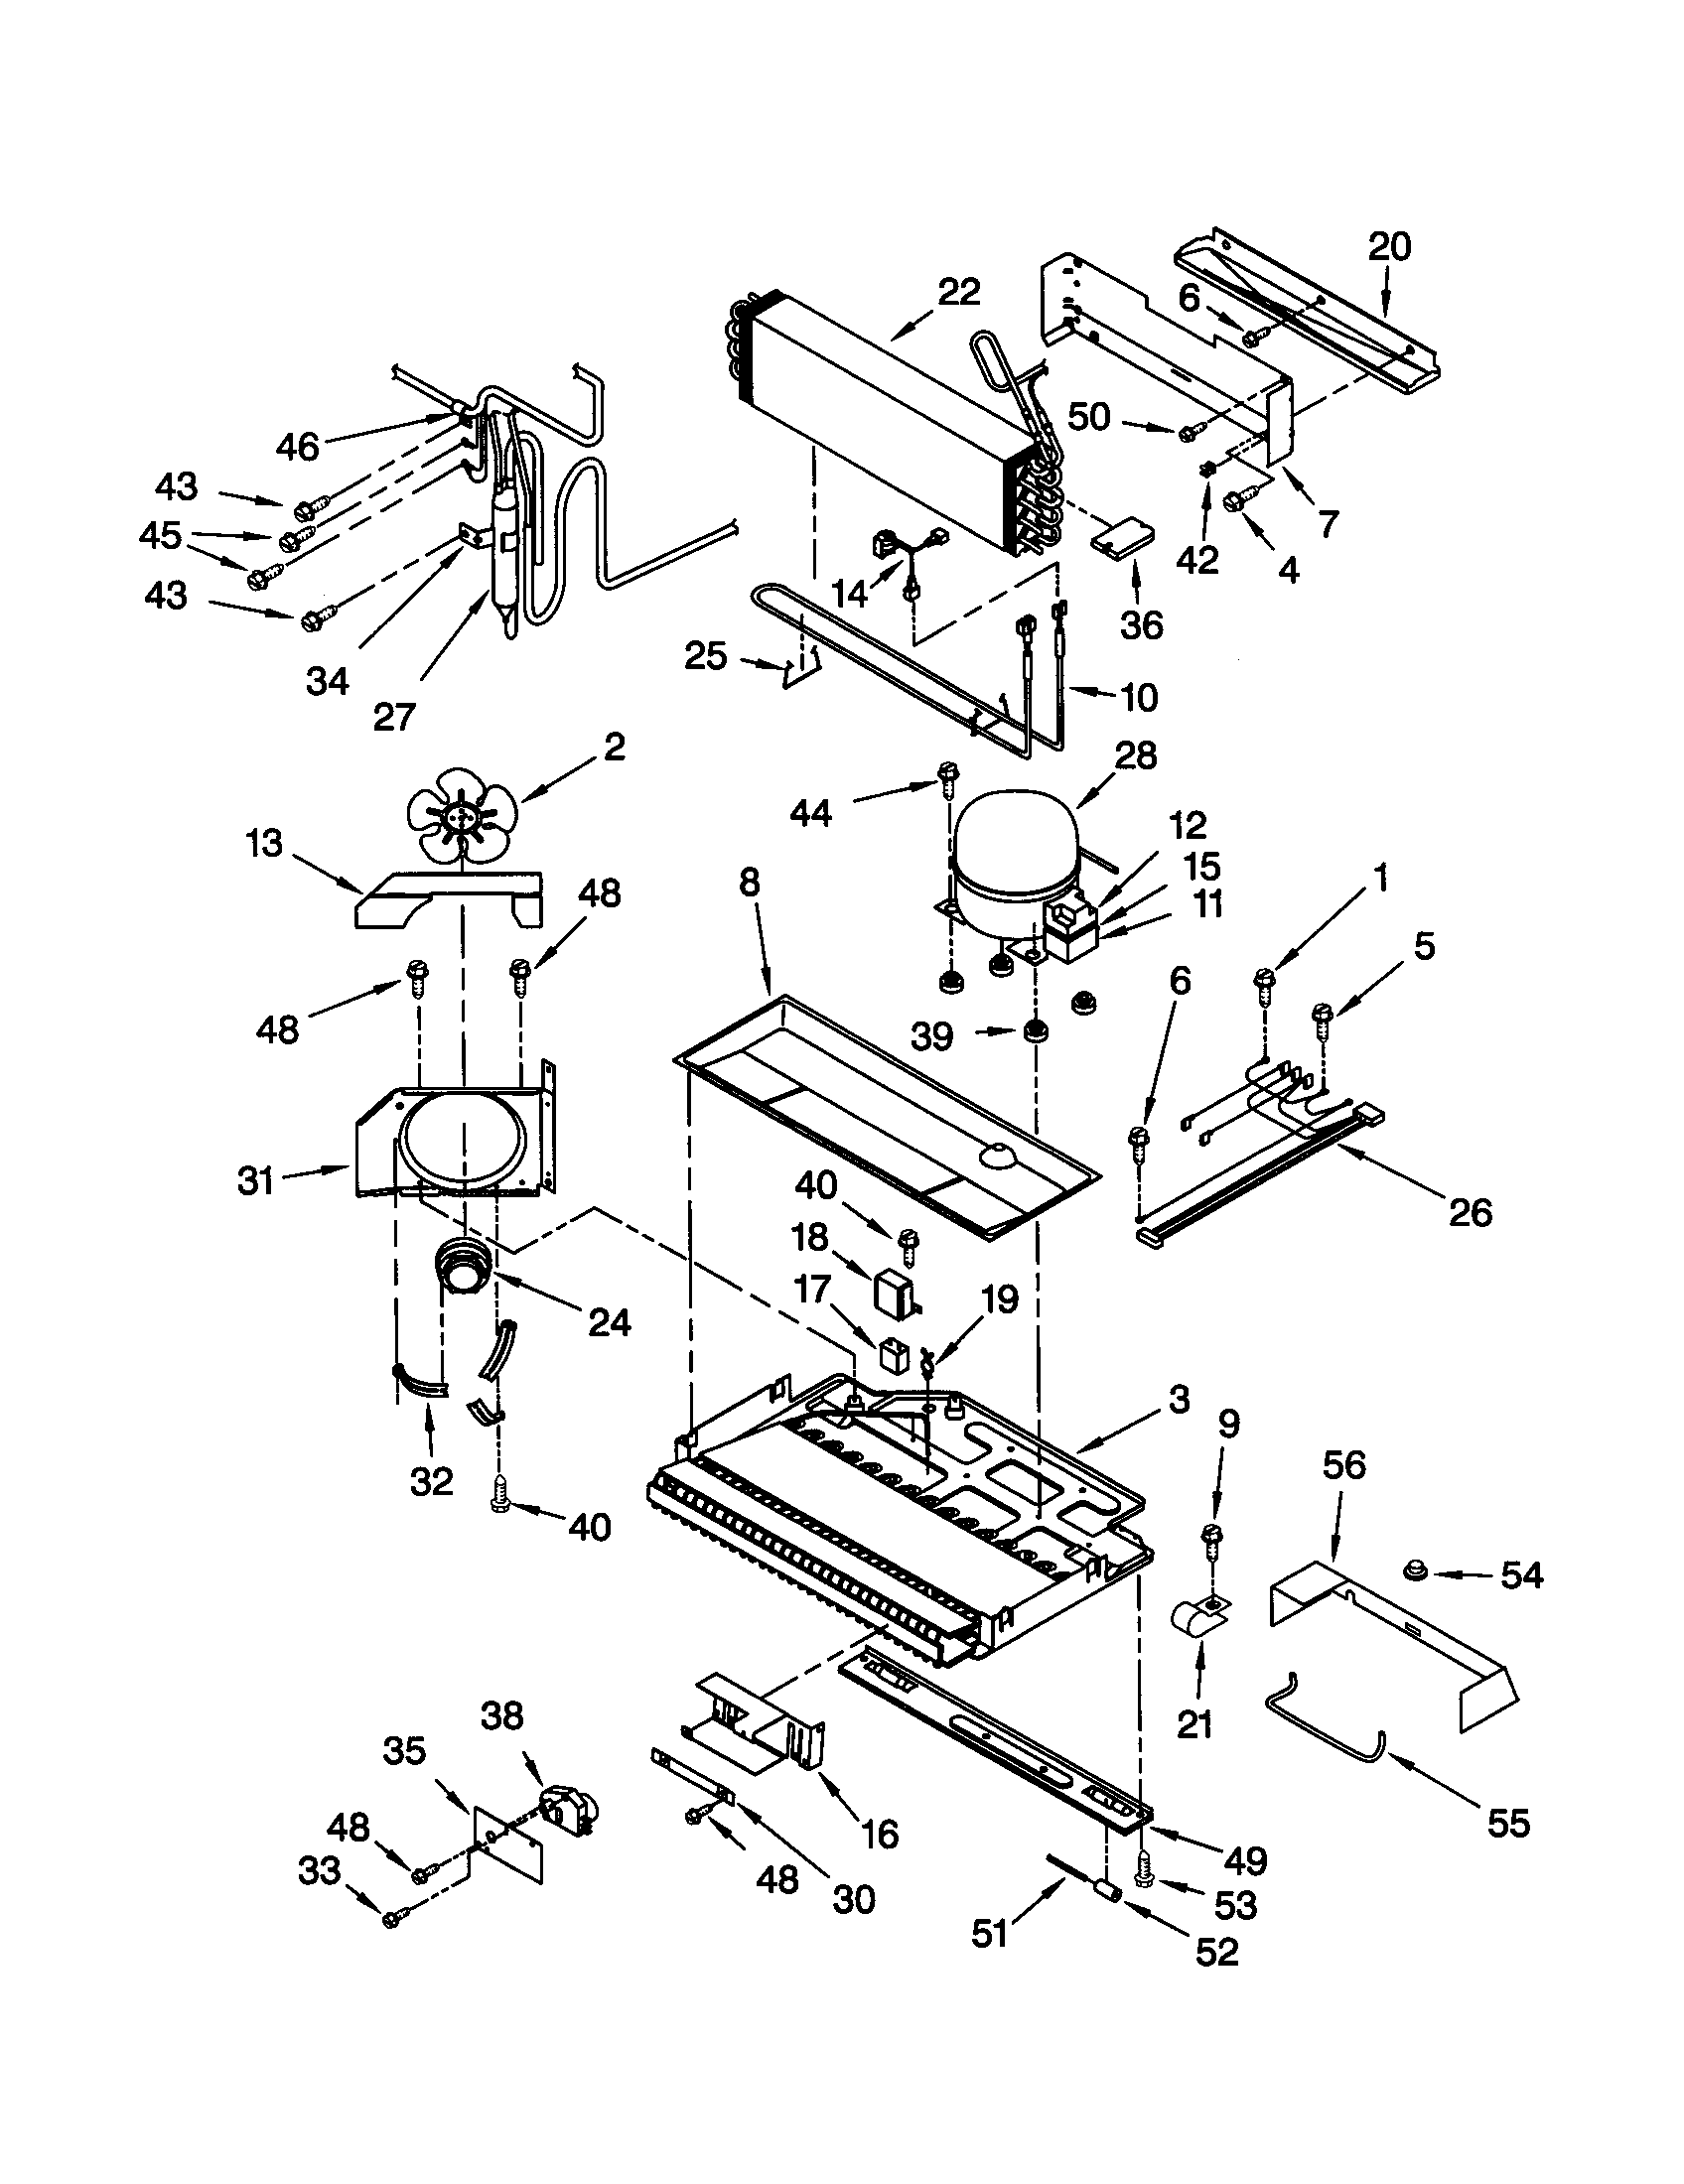 KitchenAid KBRS22KGWH1 unit diagram